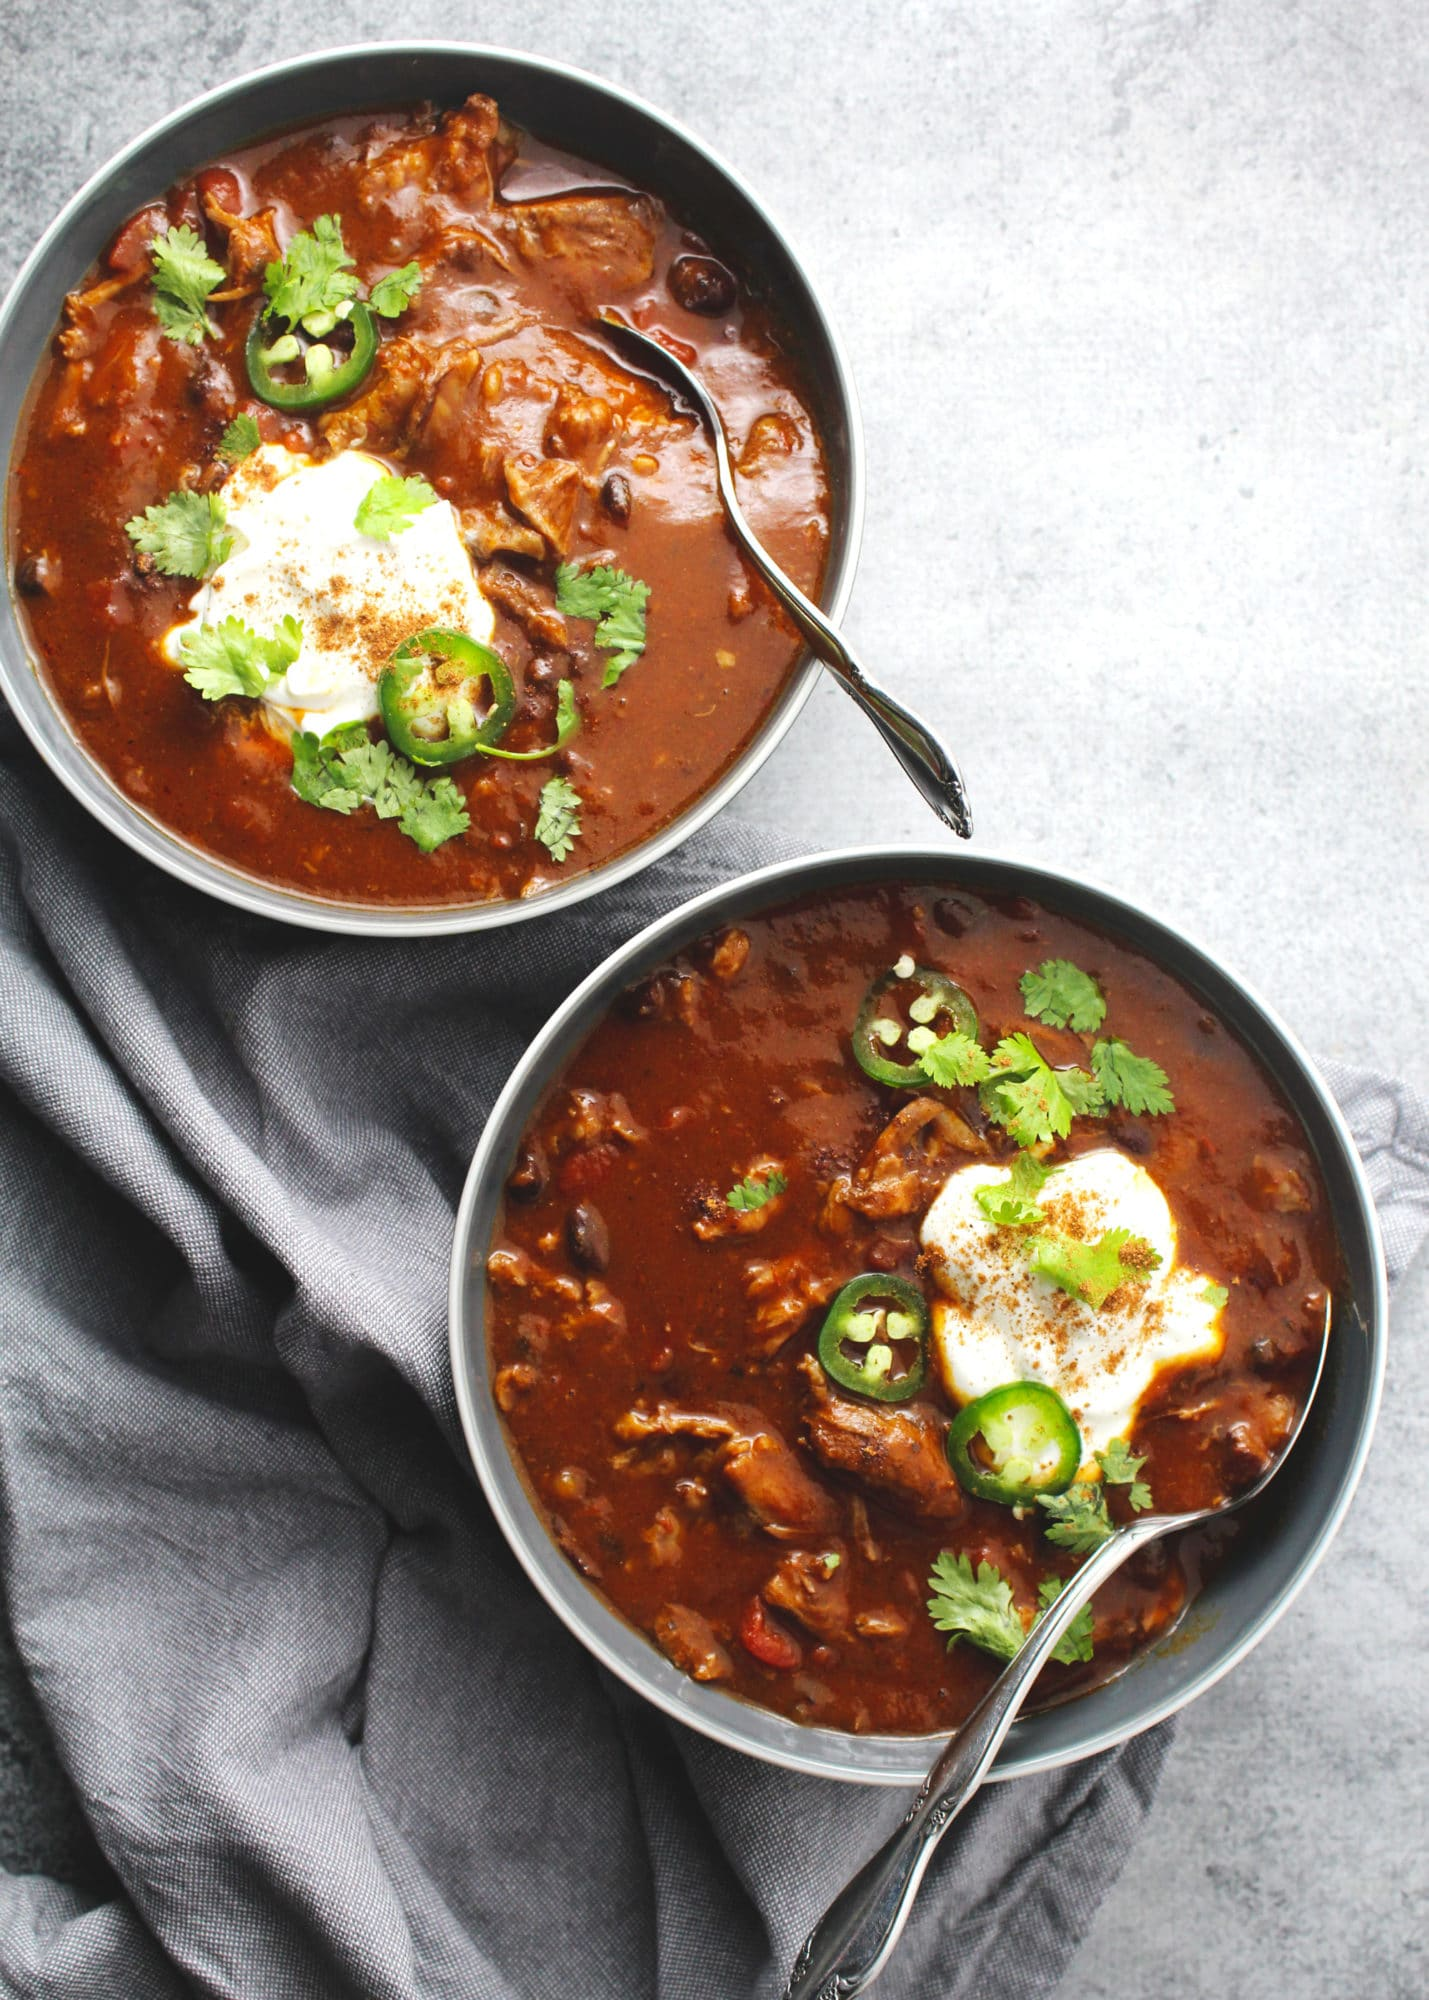 This slow cooked chili is the perfect fall dinner for pumpkin season and packs a sweet and savory taste all in one healthy and delicious bowl   via @AimeeMarsLiving   #Pumpkin #Chili #Beef